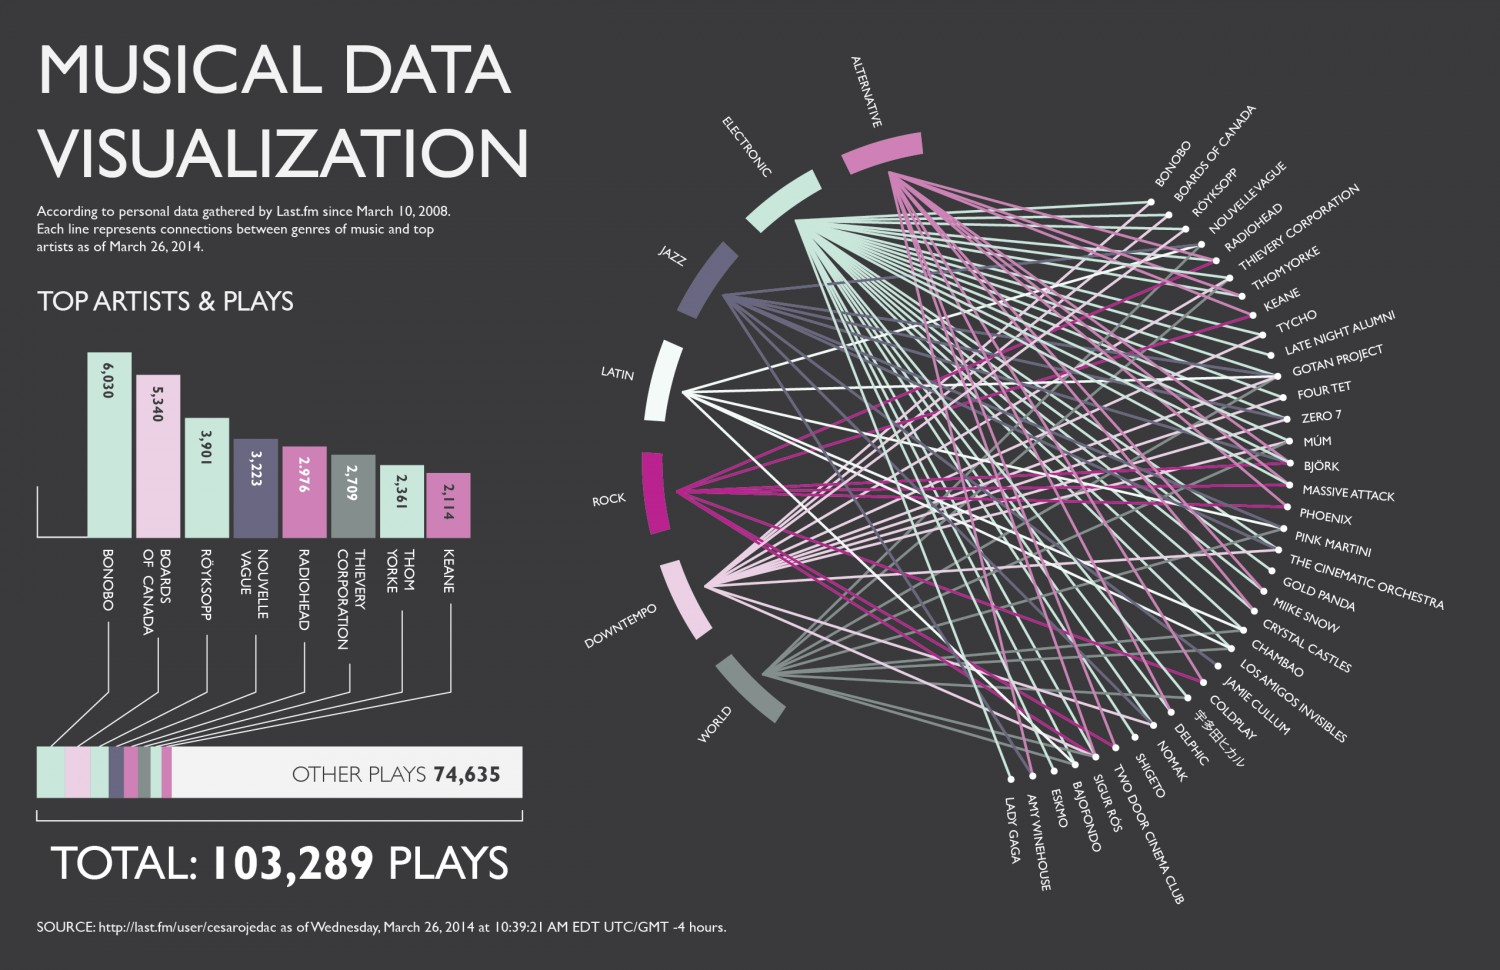 musical-data-visualization_53440cb531cf7_w1500.png .png